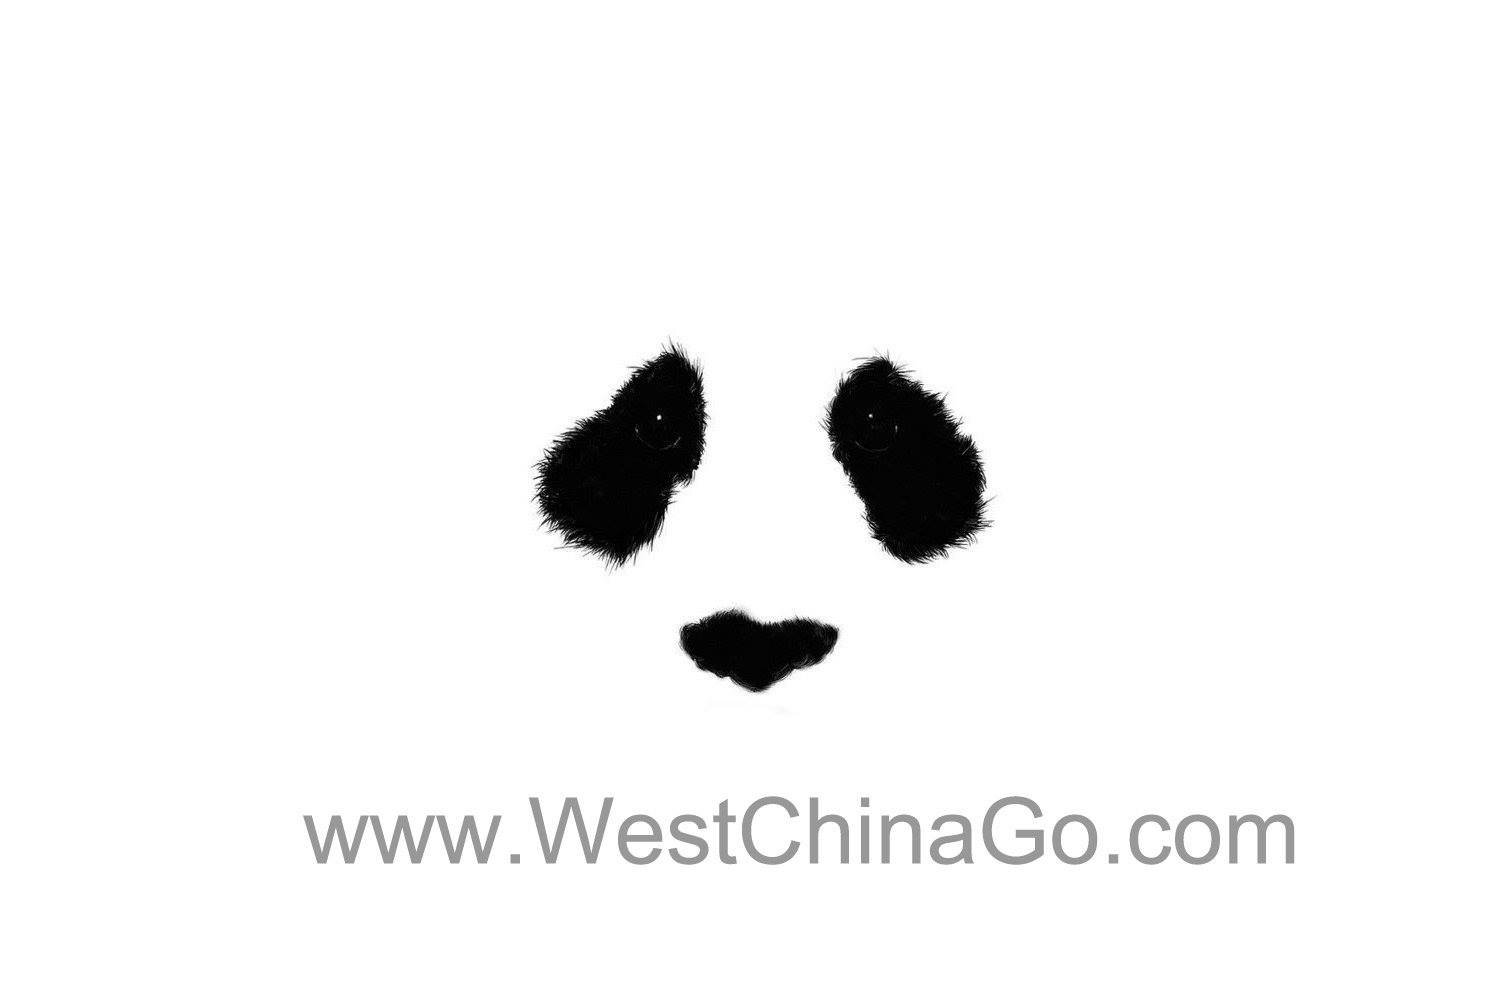 chengdu westchinago tour